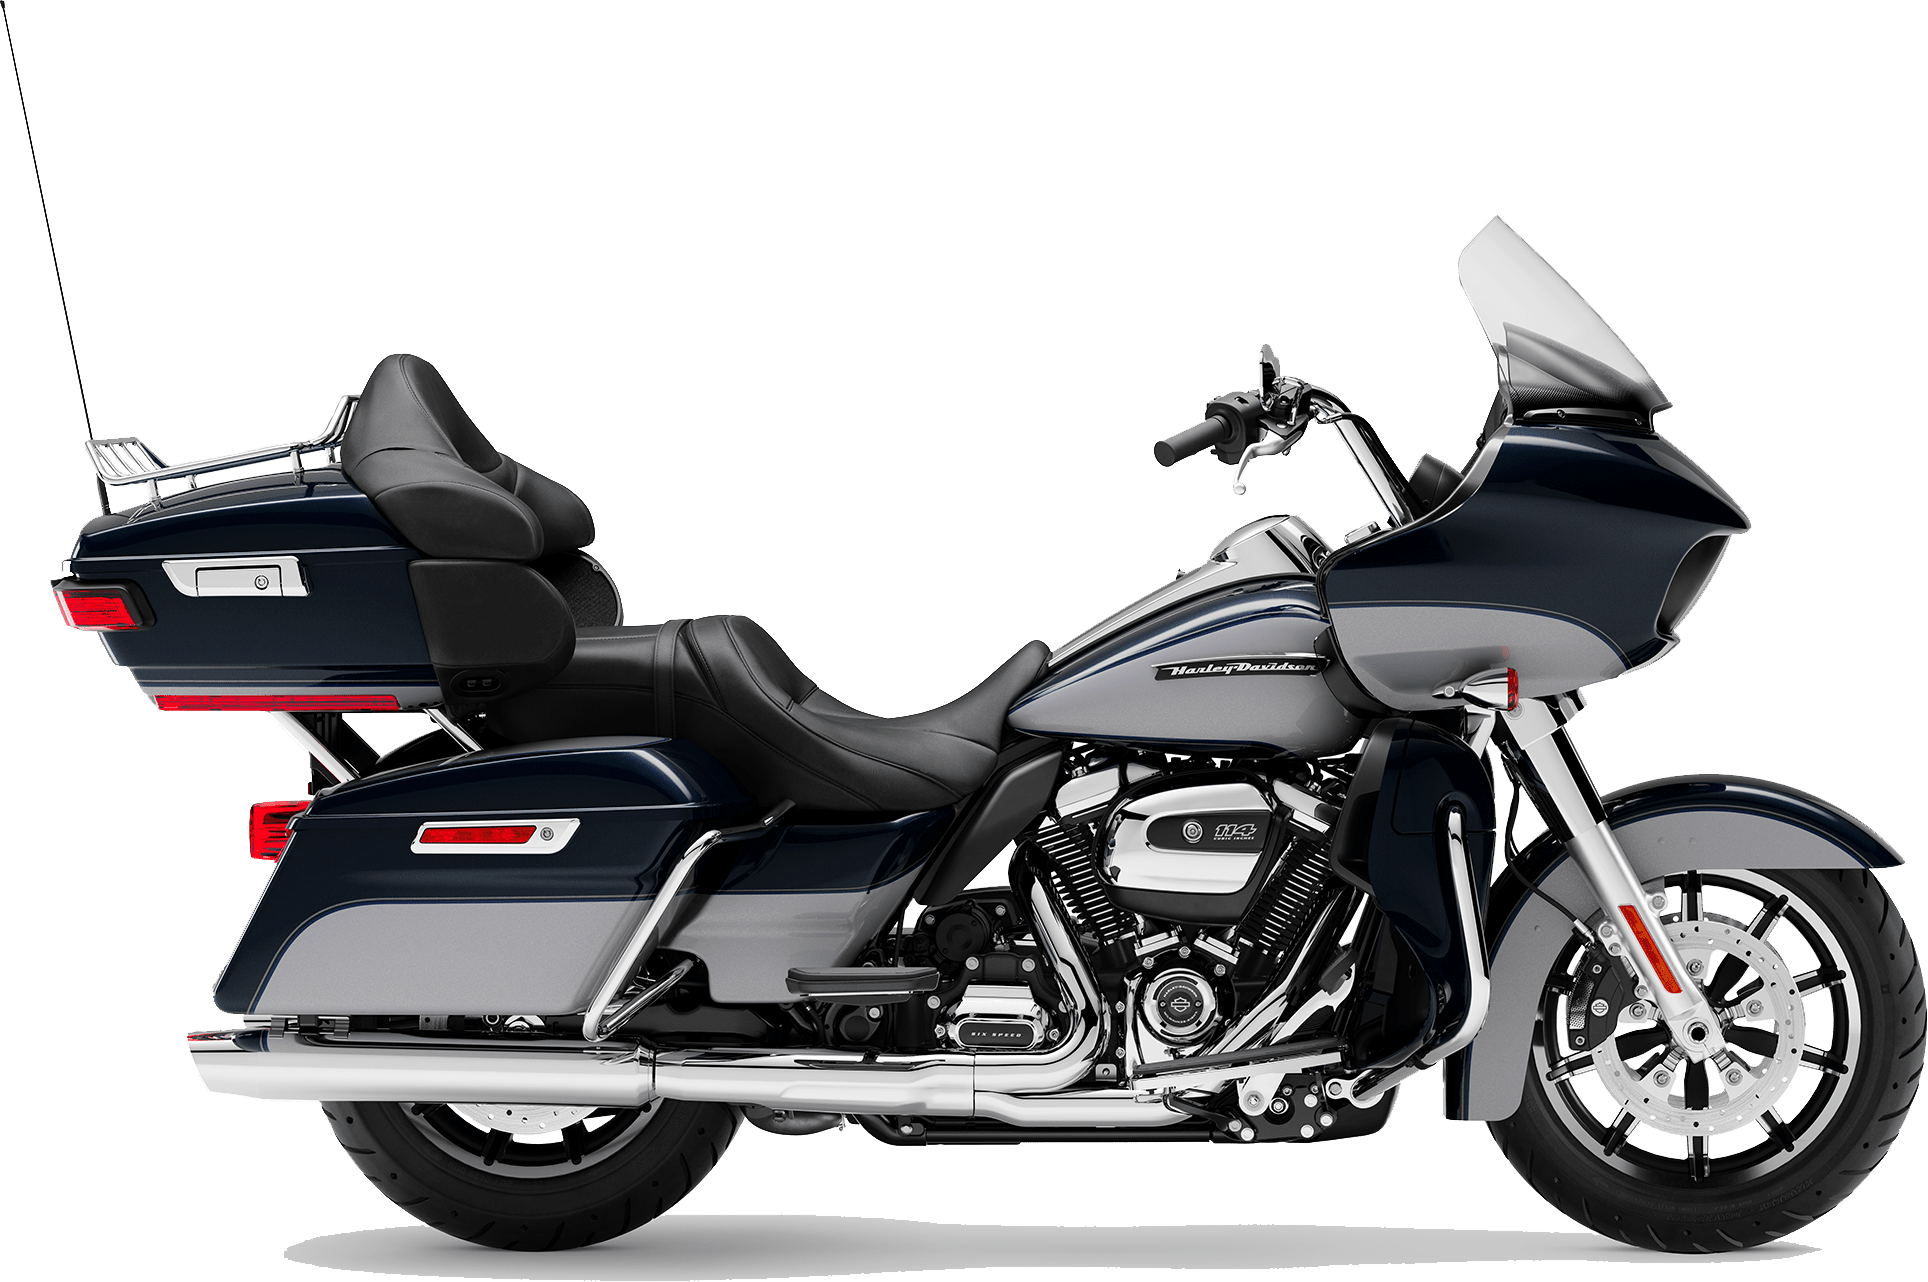 2019 Harley-Davidson H-D Touring Road Glide Ultra Midnight Blue Barracuda Silver